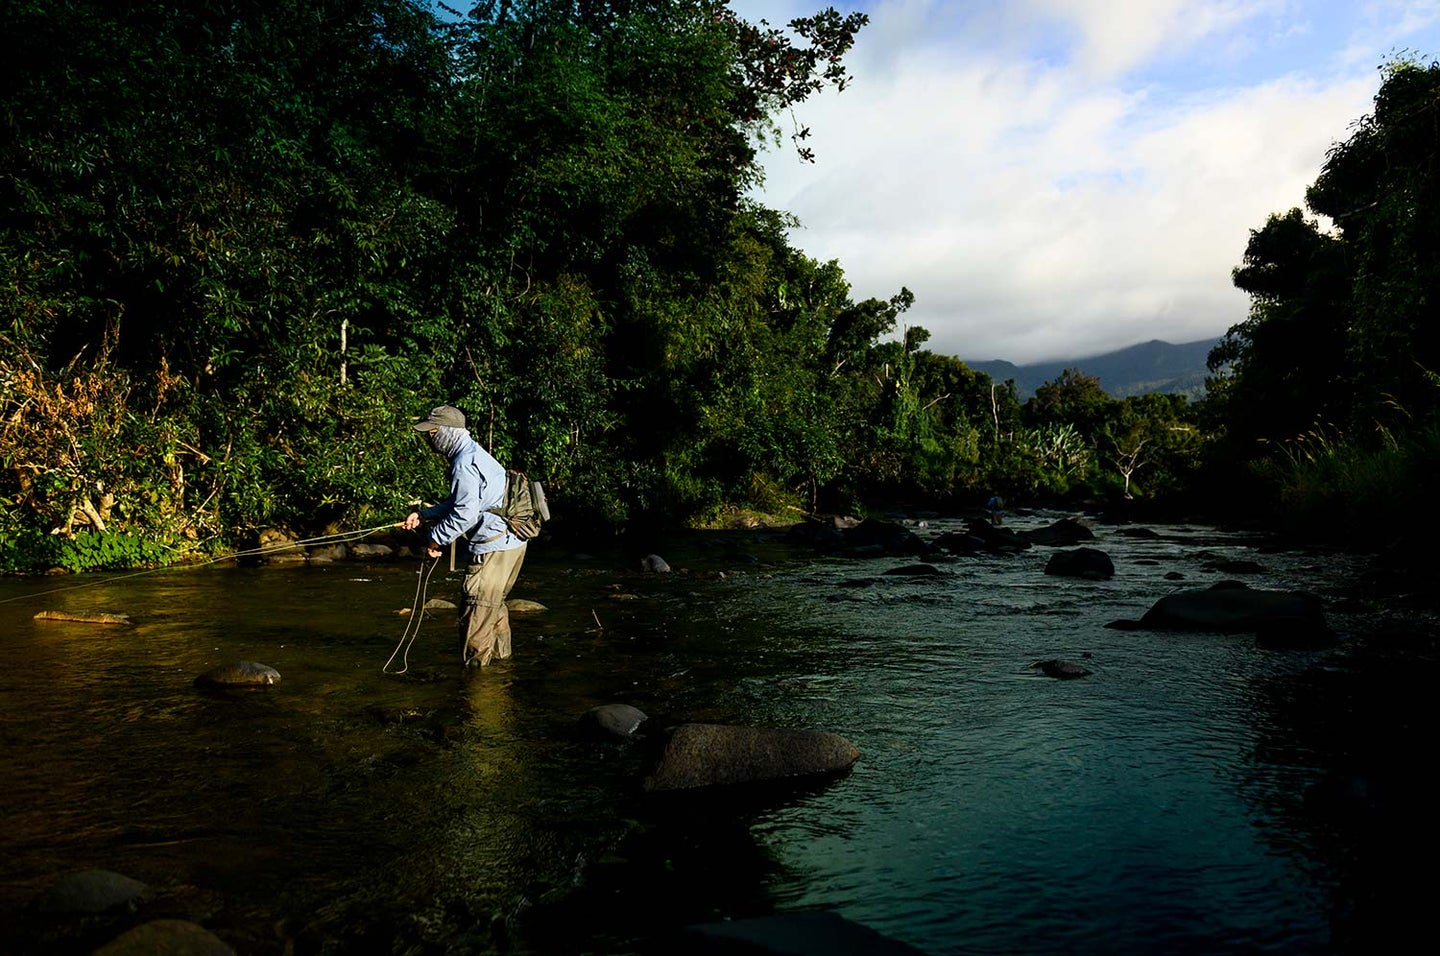 An angler fishing in a Puerto Rico river.